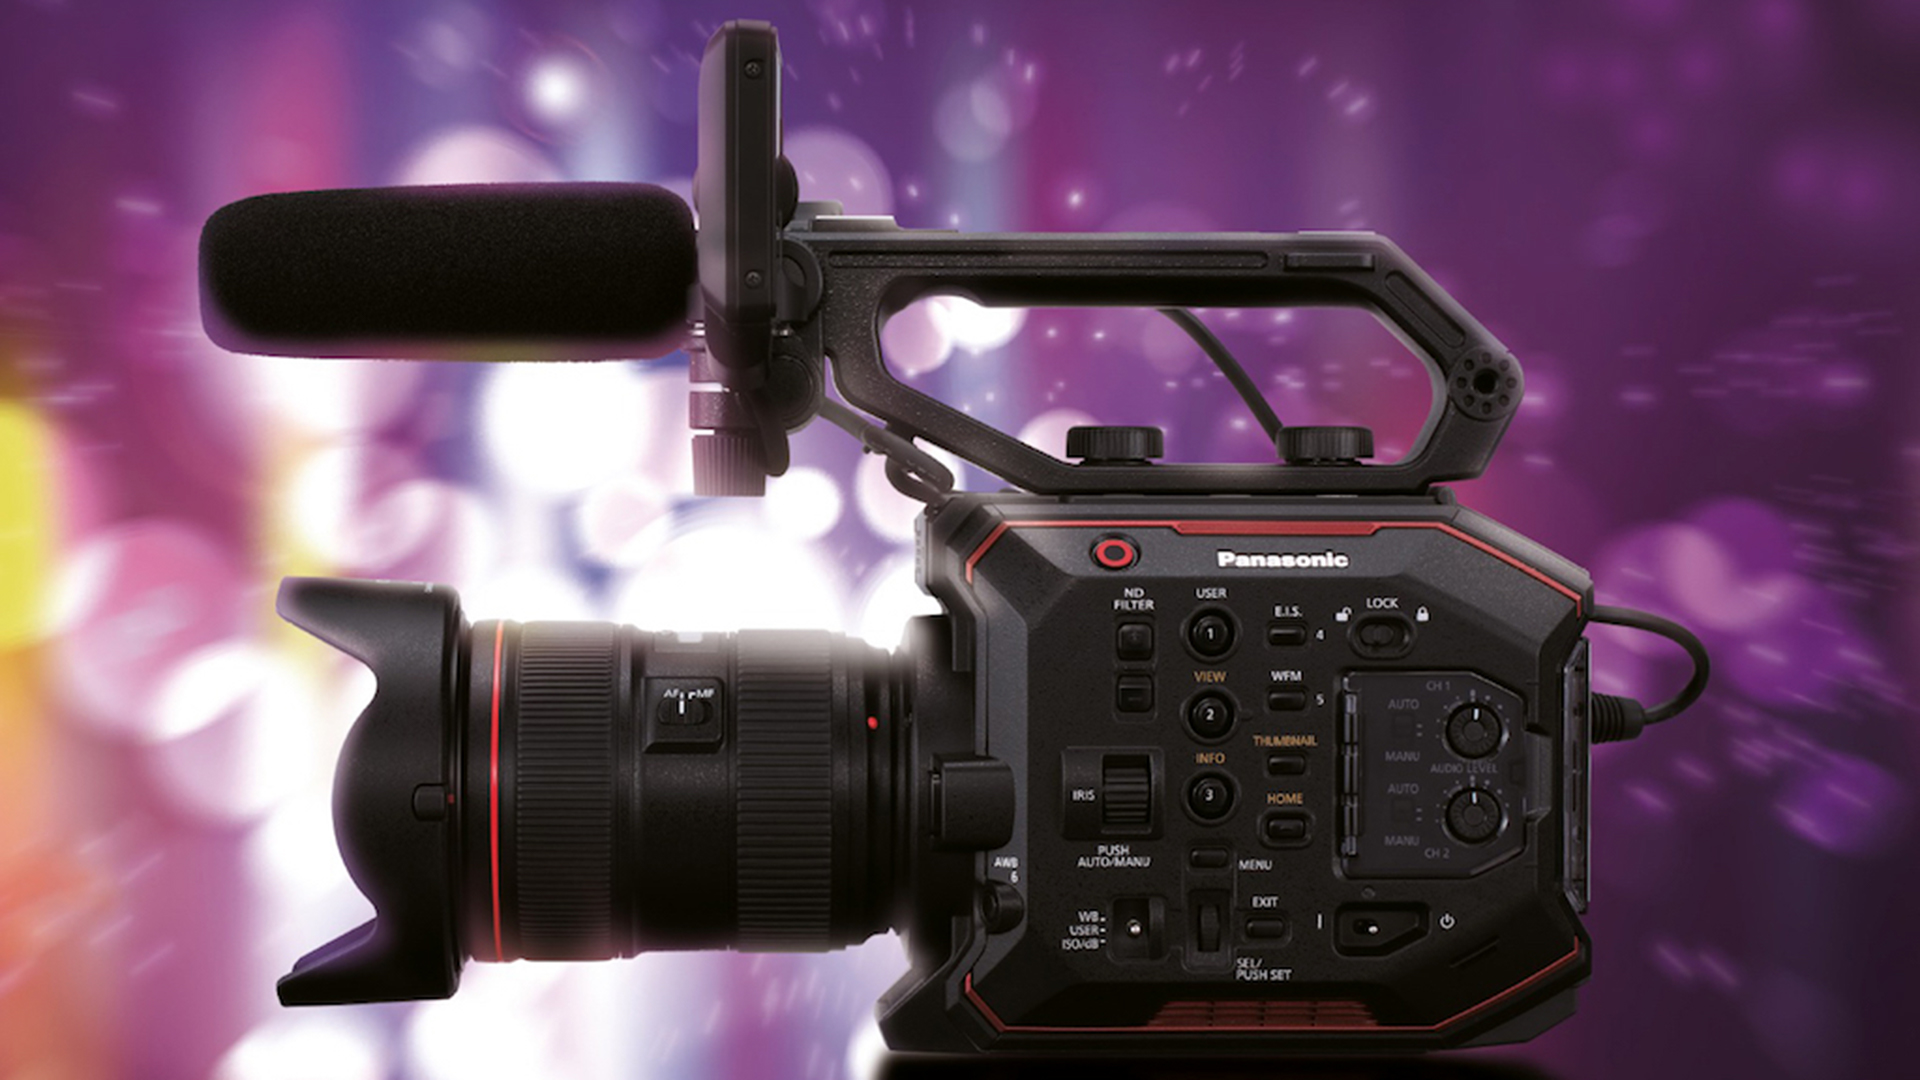 ... Array - panasonic eva1 guide by barry green now available for free  cinema5d rh cinema5d com